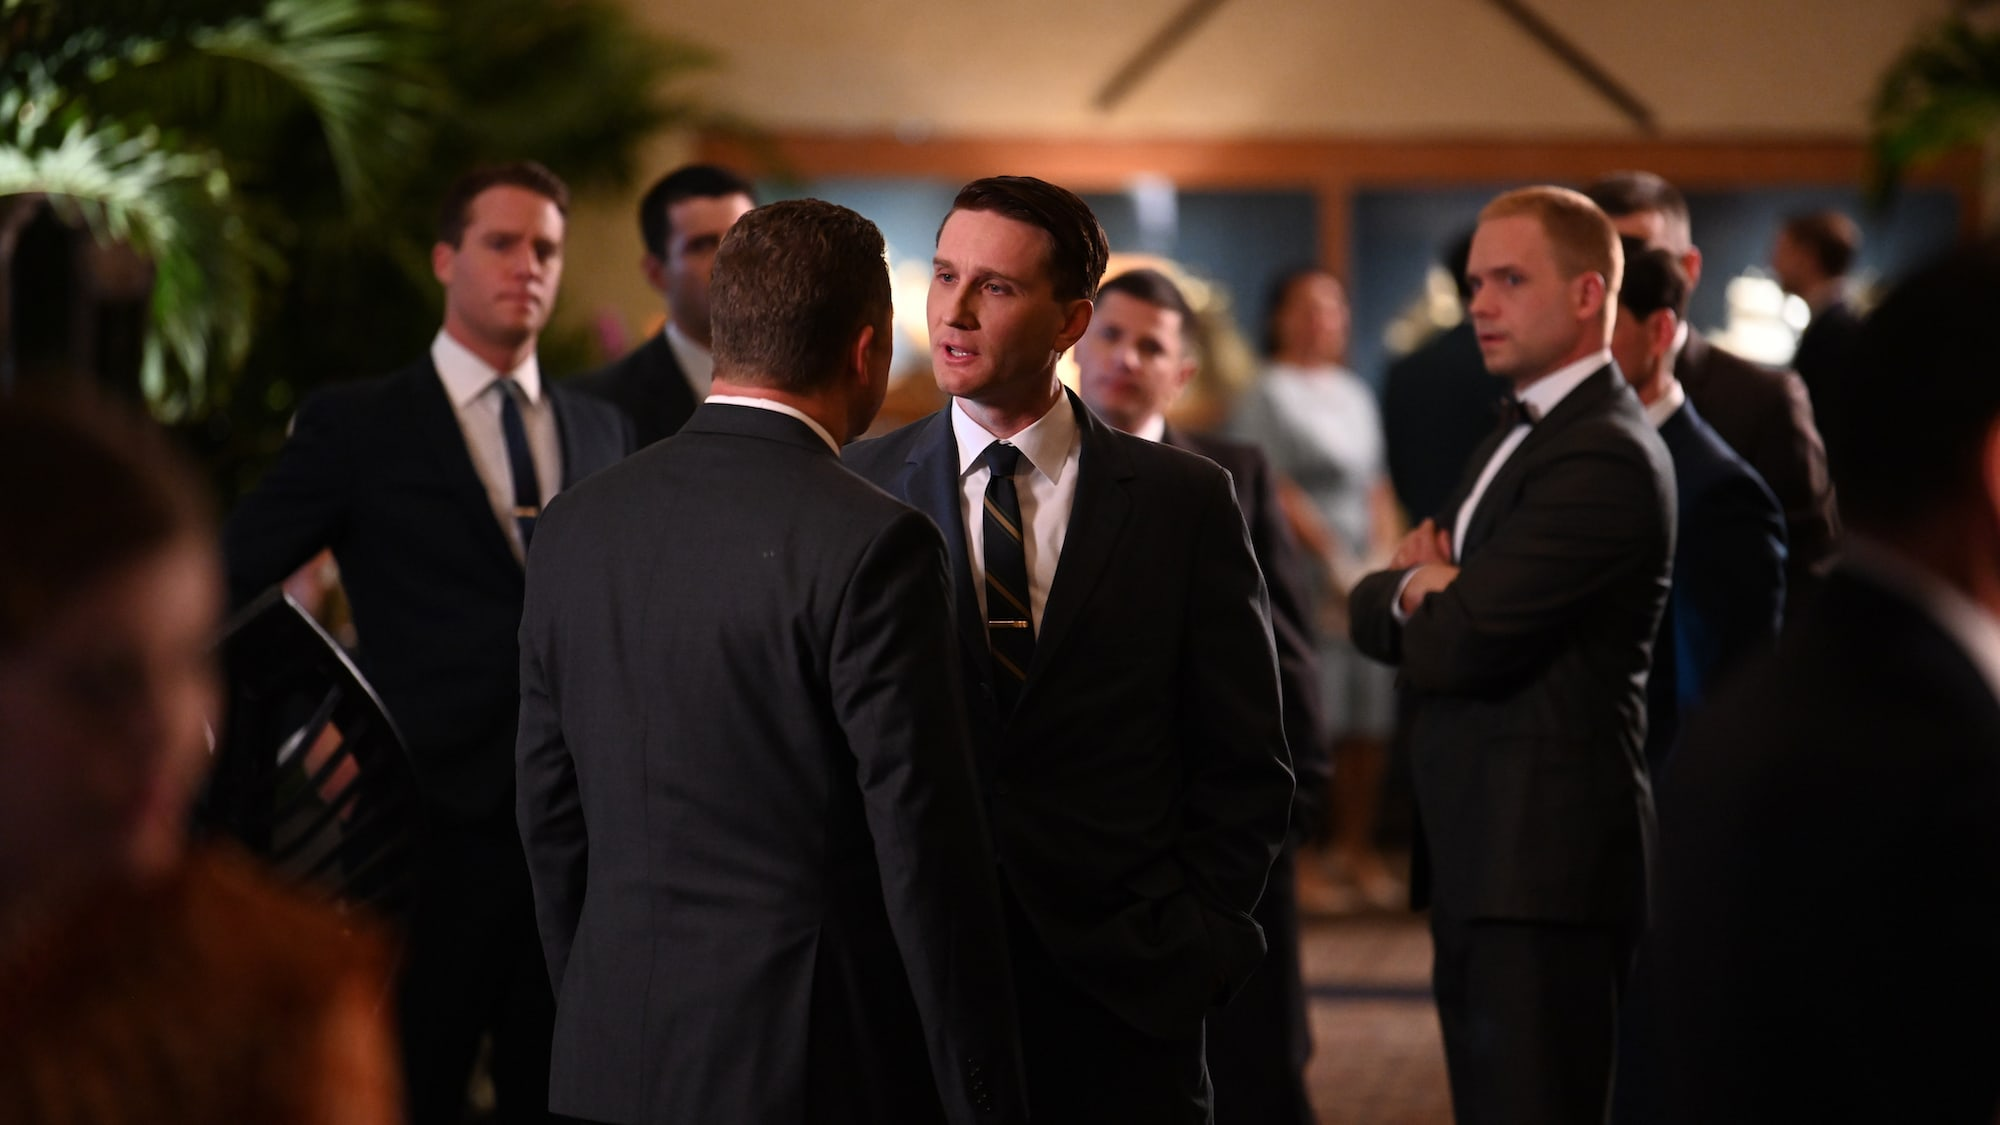 Wally Schirra played by Aaron Staton (center) at a reception in San Diego, CA in National Geographic's THE RIGHT STUFF streaming on Disney+. (National Geographic/Gene Page)